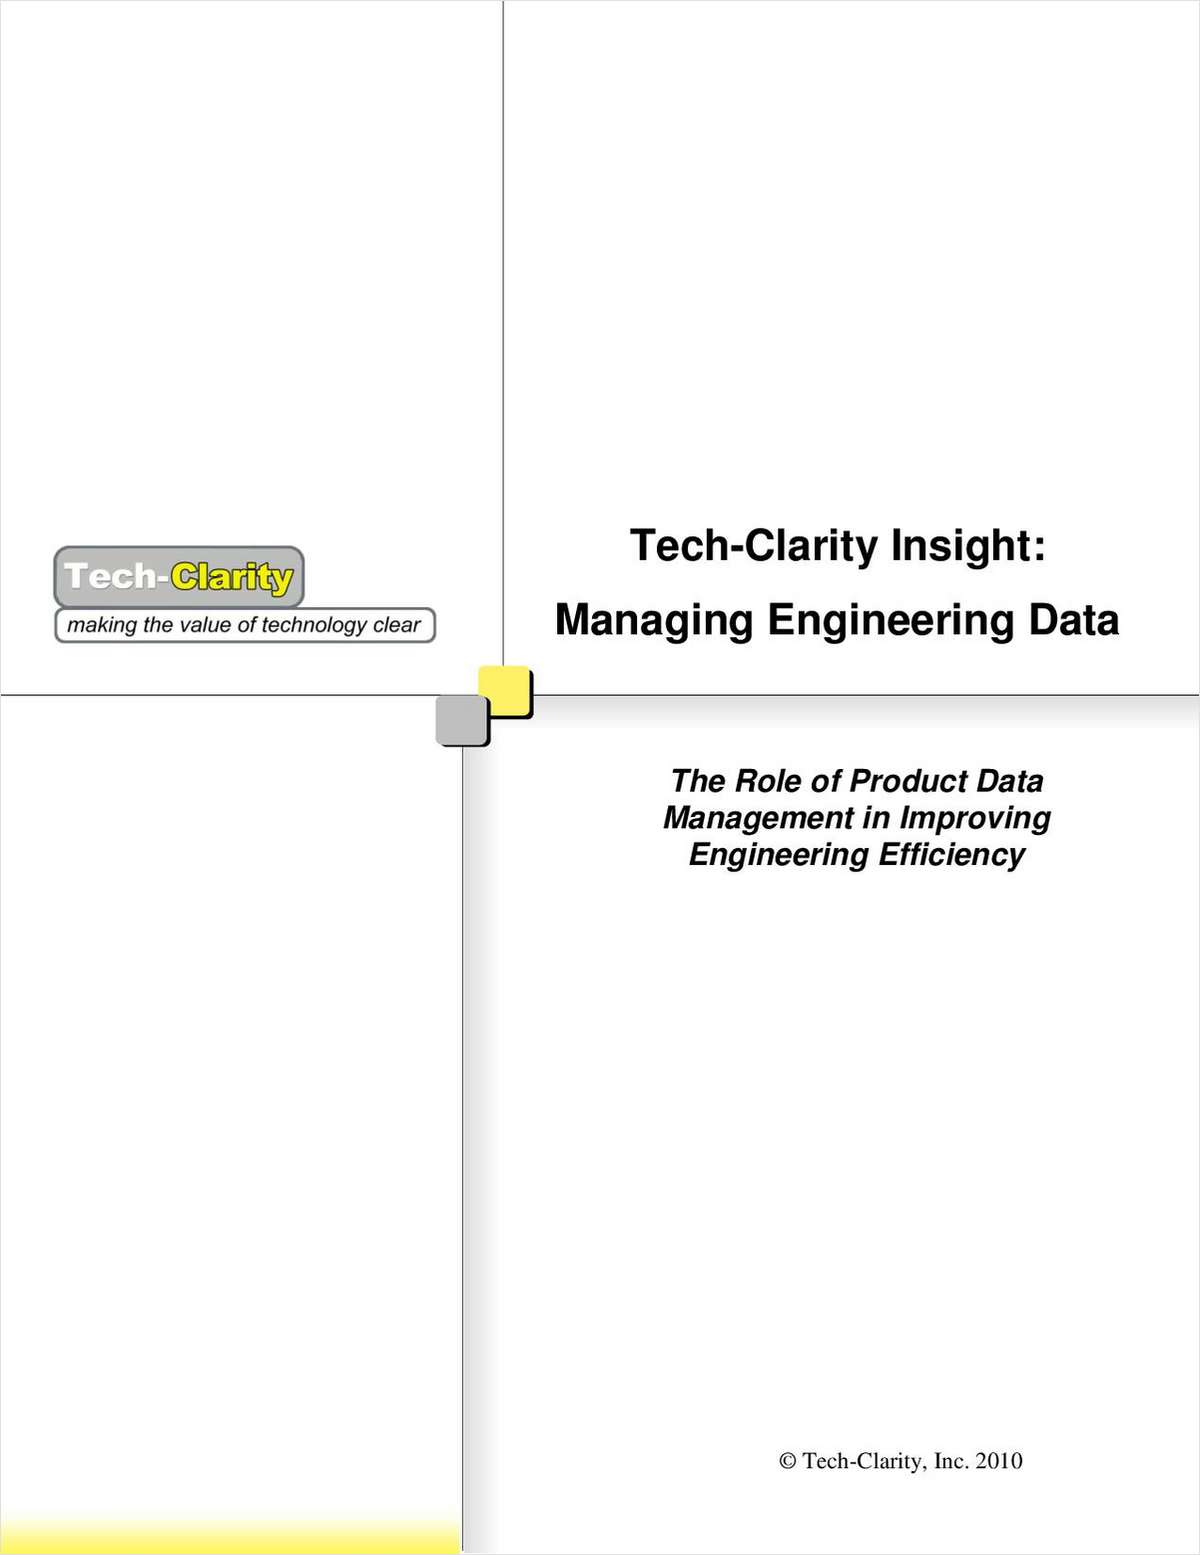 The Role of Product Data Management in Engineering Efficiency